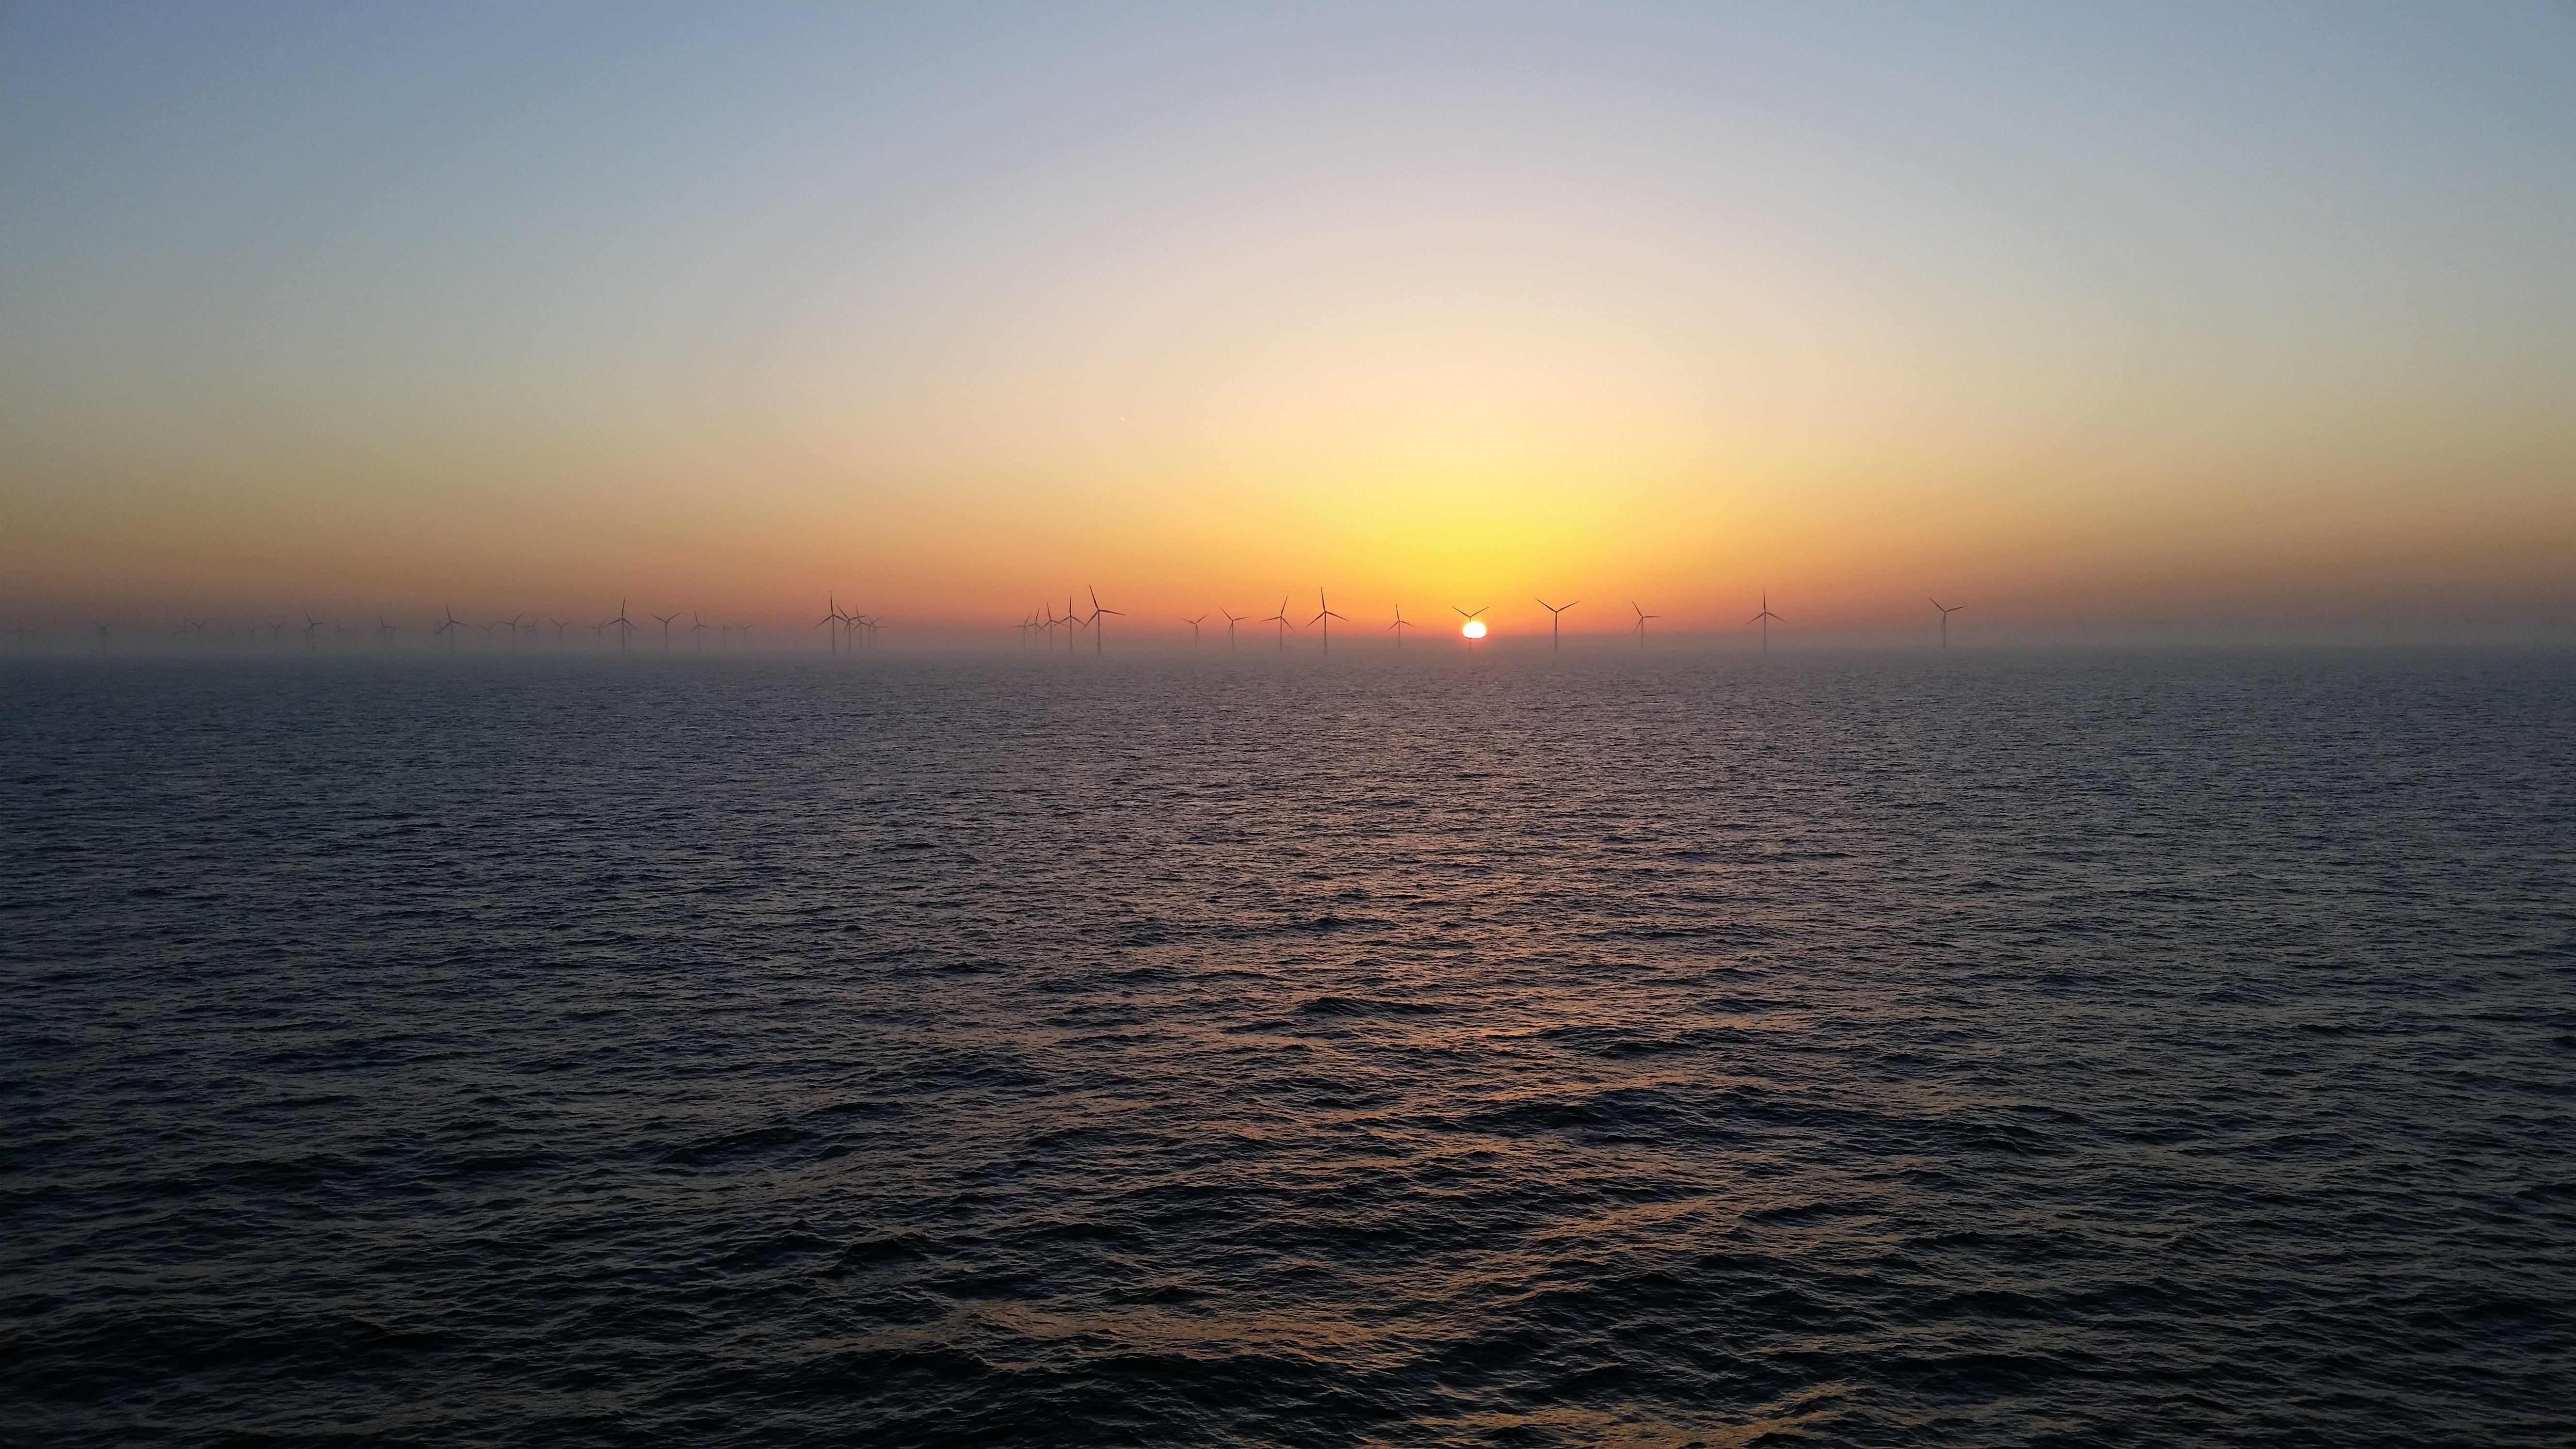 View of the sea during sunset and wind turbines visible at the horizon